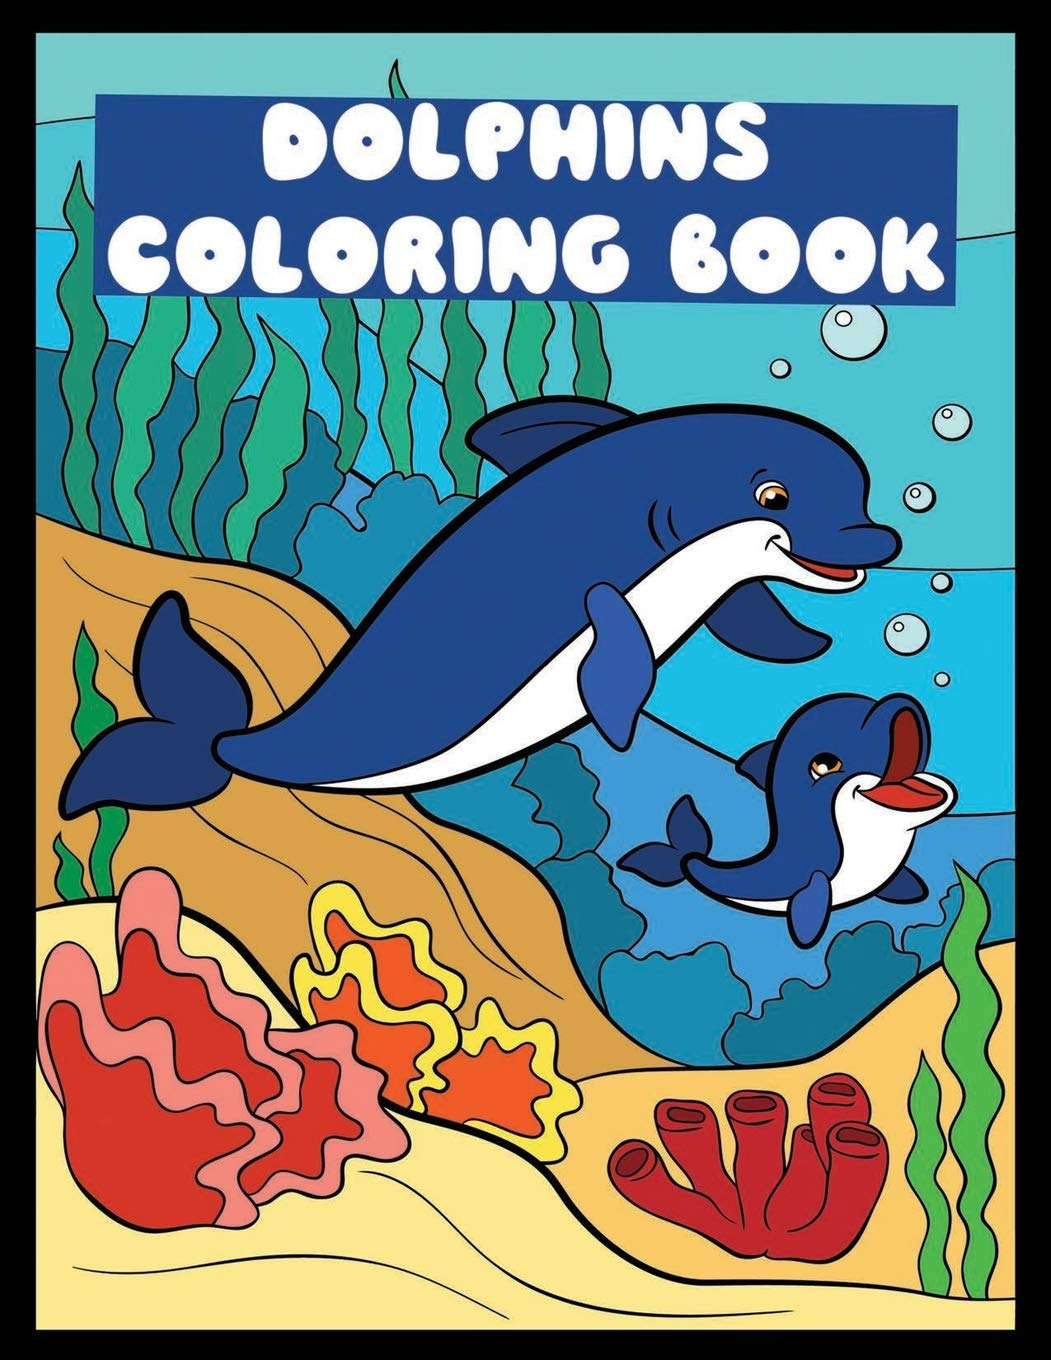 Dolphin Coloring Book Dolphins Orca Whales Children Activity Book For Boys Girls Age 3 8 With 30 Fun Coloring Pages Of Cool Kids Learning Animals Biswas Bibak 9798647921611 Amazon Com Books